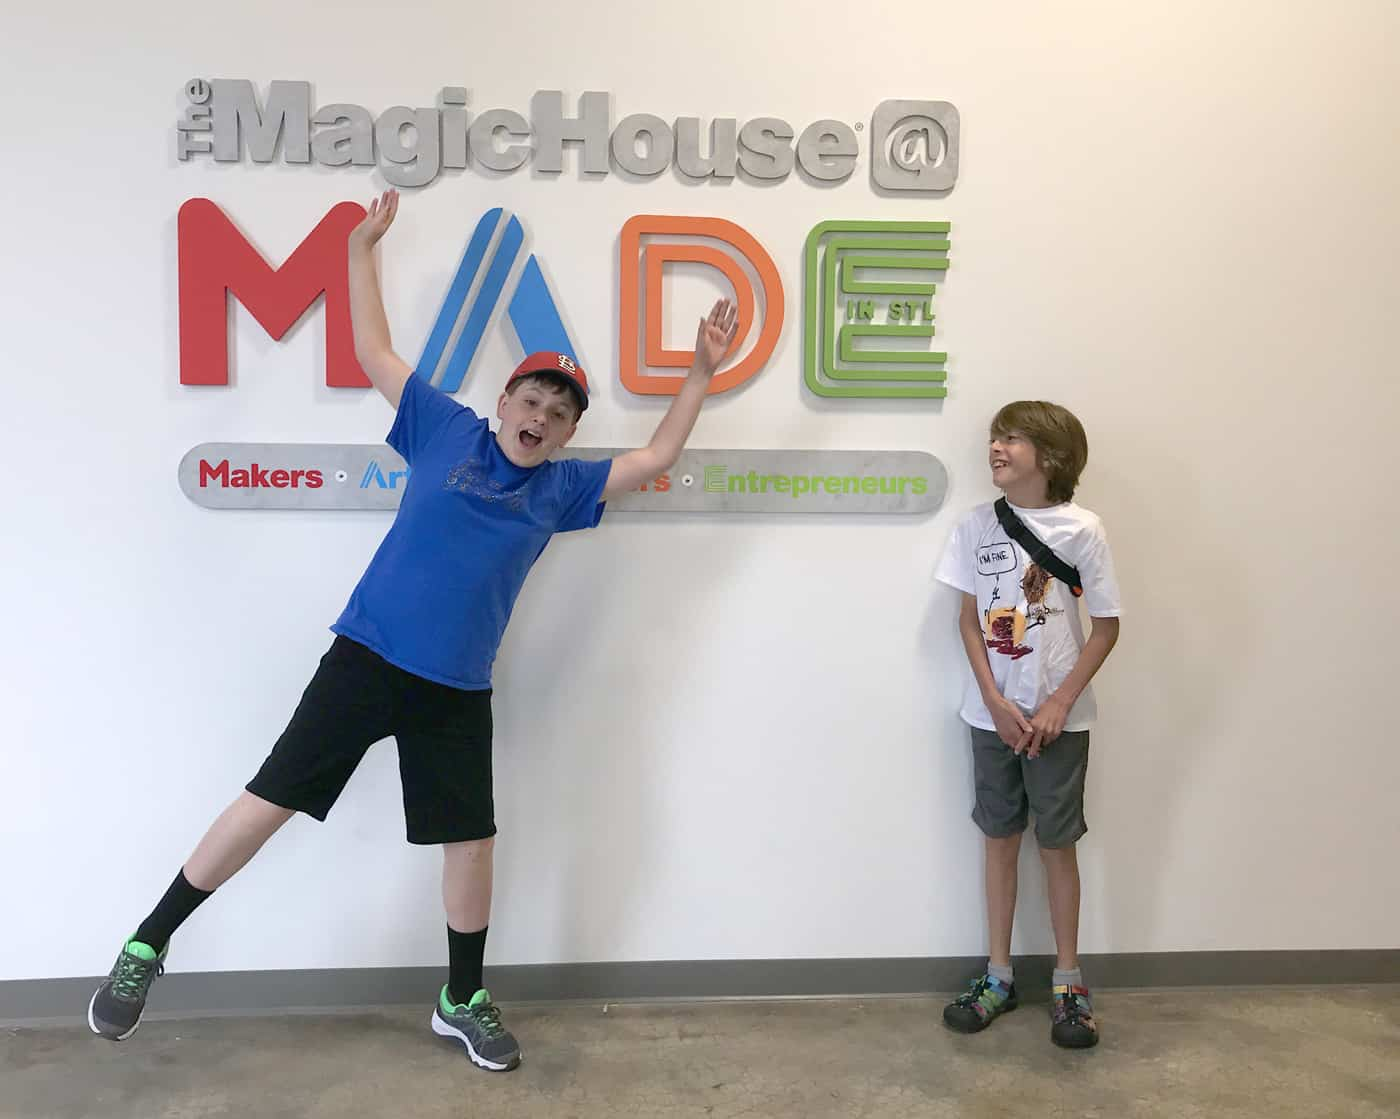 two boys in front of the MADE sign.